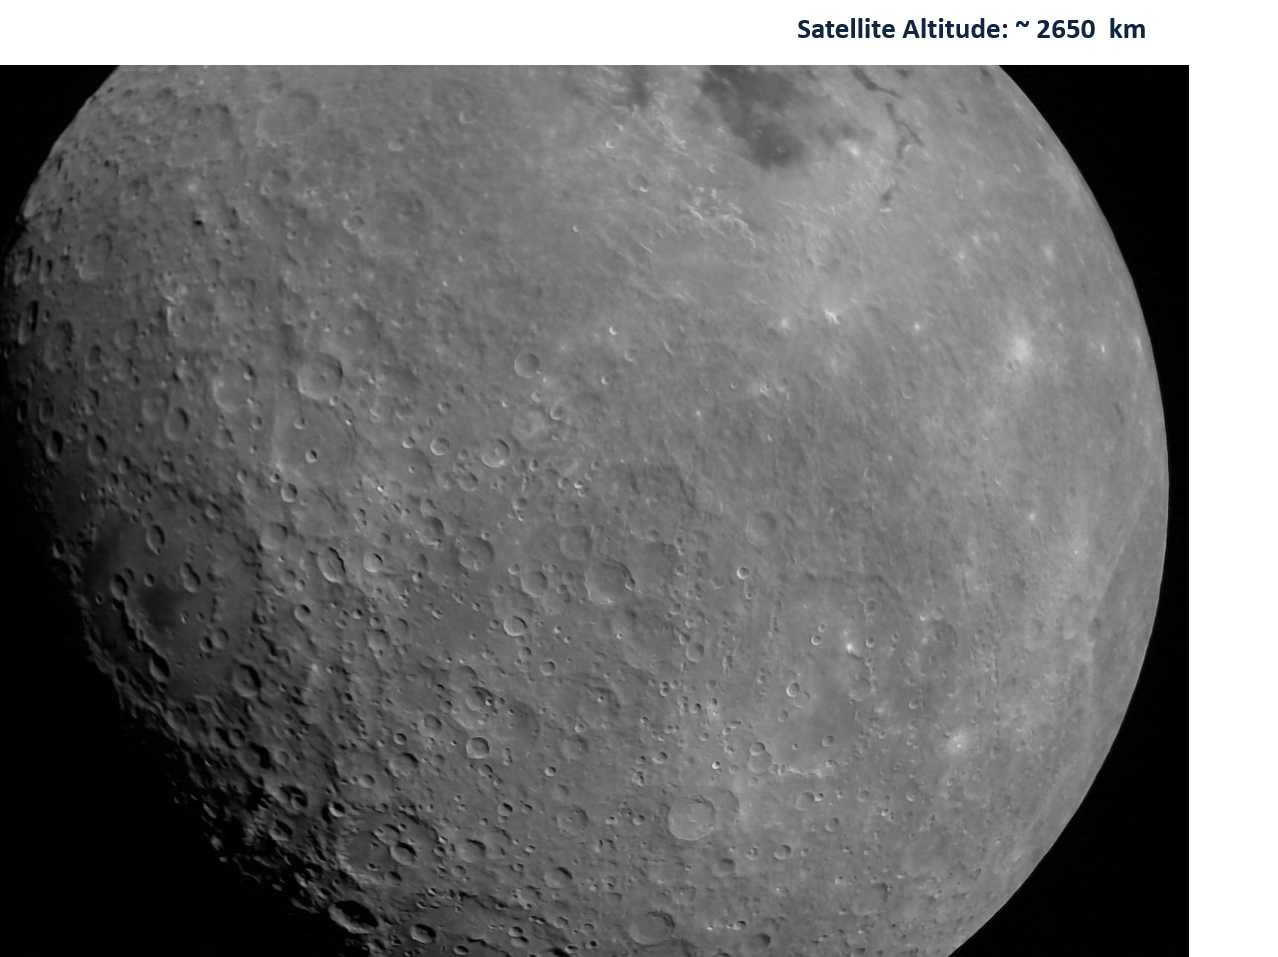 https://www.isro.gov.in/sites/default/files/presentation_moon_photo1.png